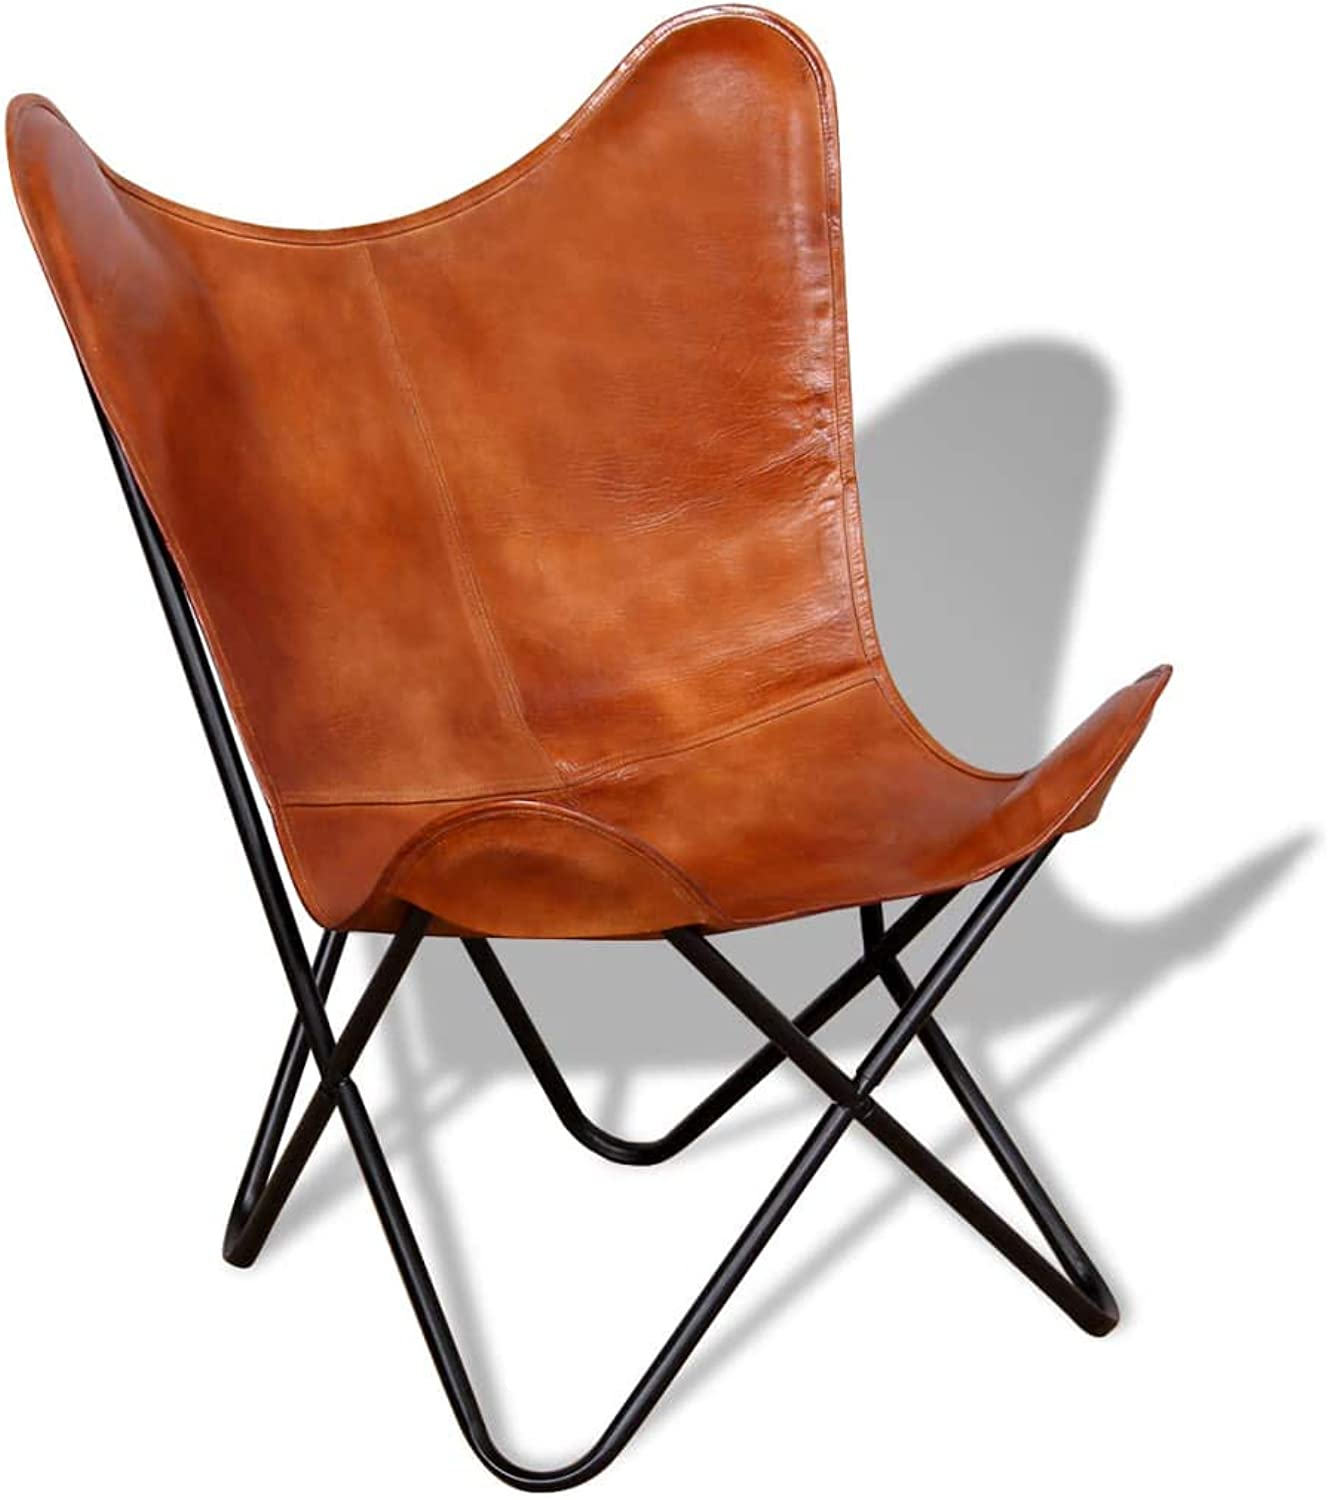 VidaXL Butterfly Chair Real Leather Handmade Vintage Brown Cafe Dining Seat